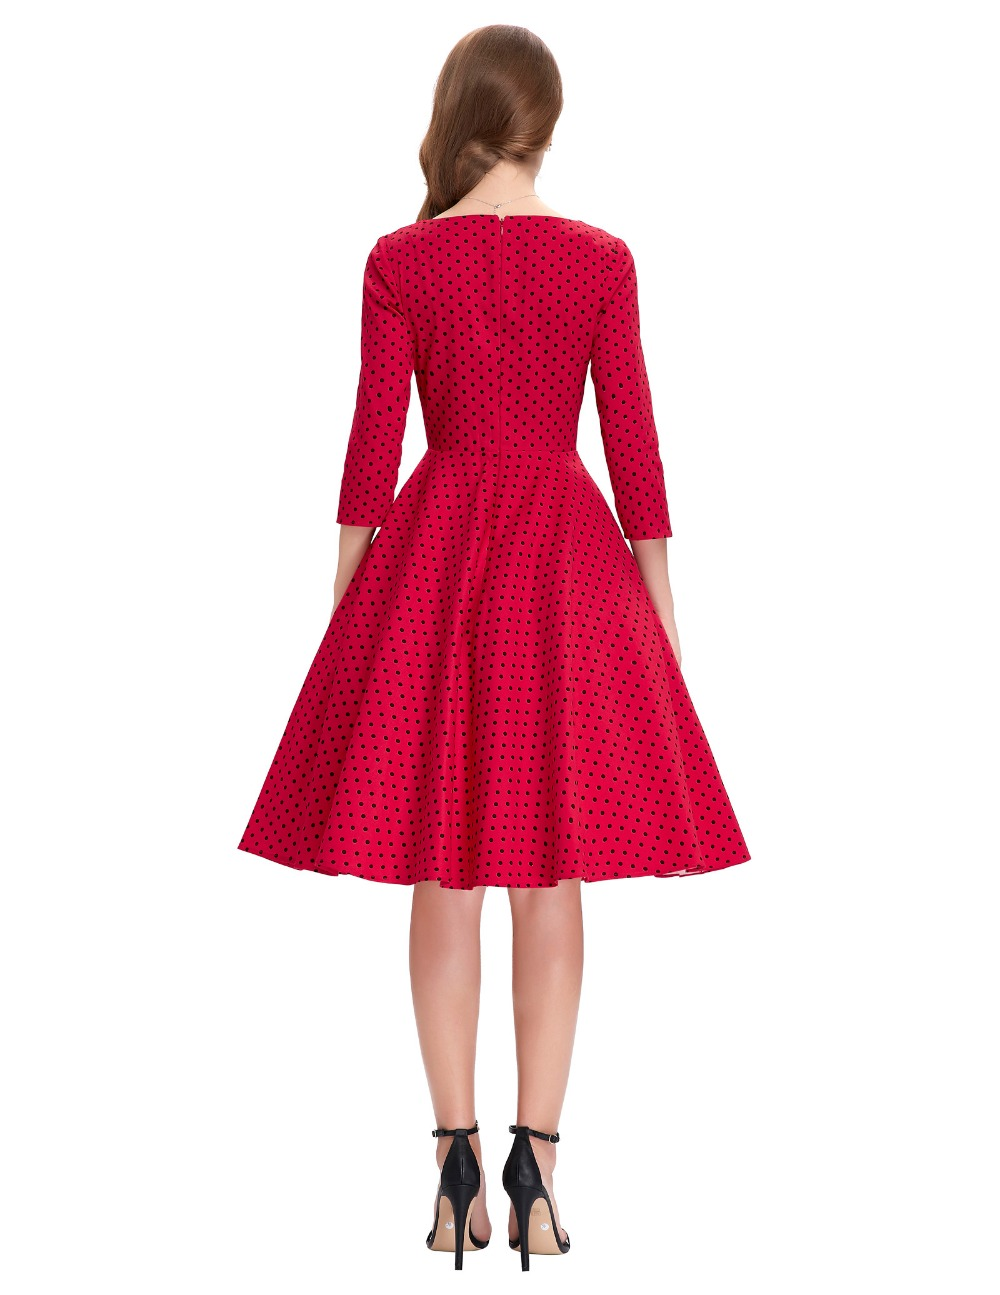 Belle Poque 2018 Women Summer Tunic Red 3 4 Sleeve Polka Dot Retro Skater  Retro 50s Vintage Woman Clothing Evening Party Dresses ba435bb1e373